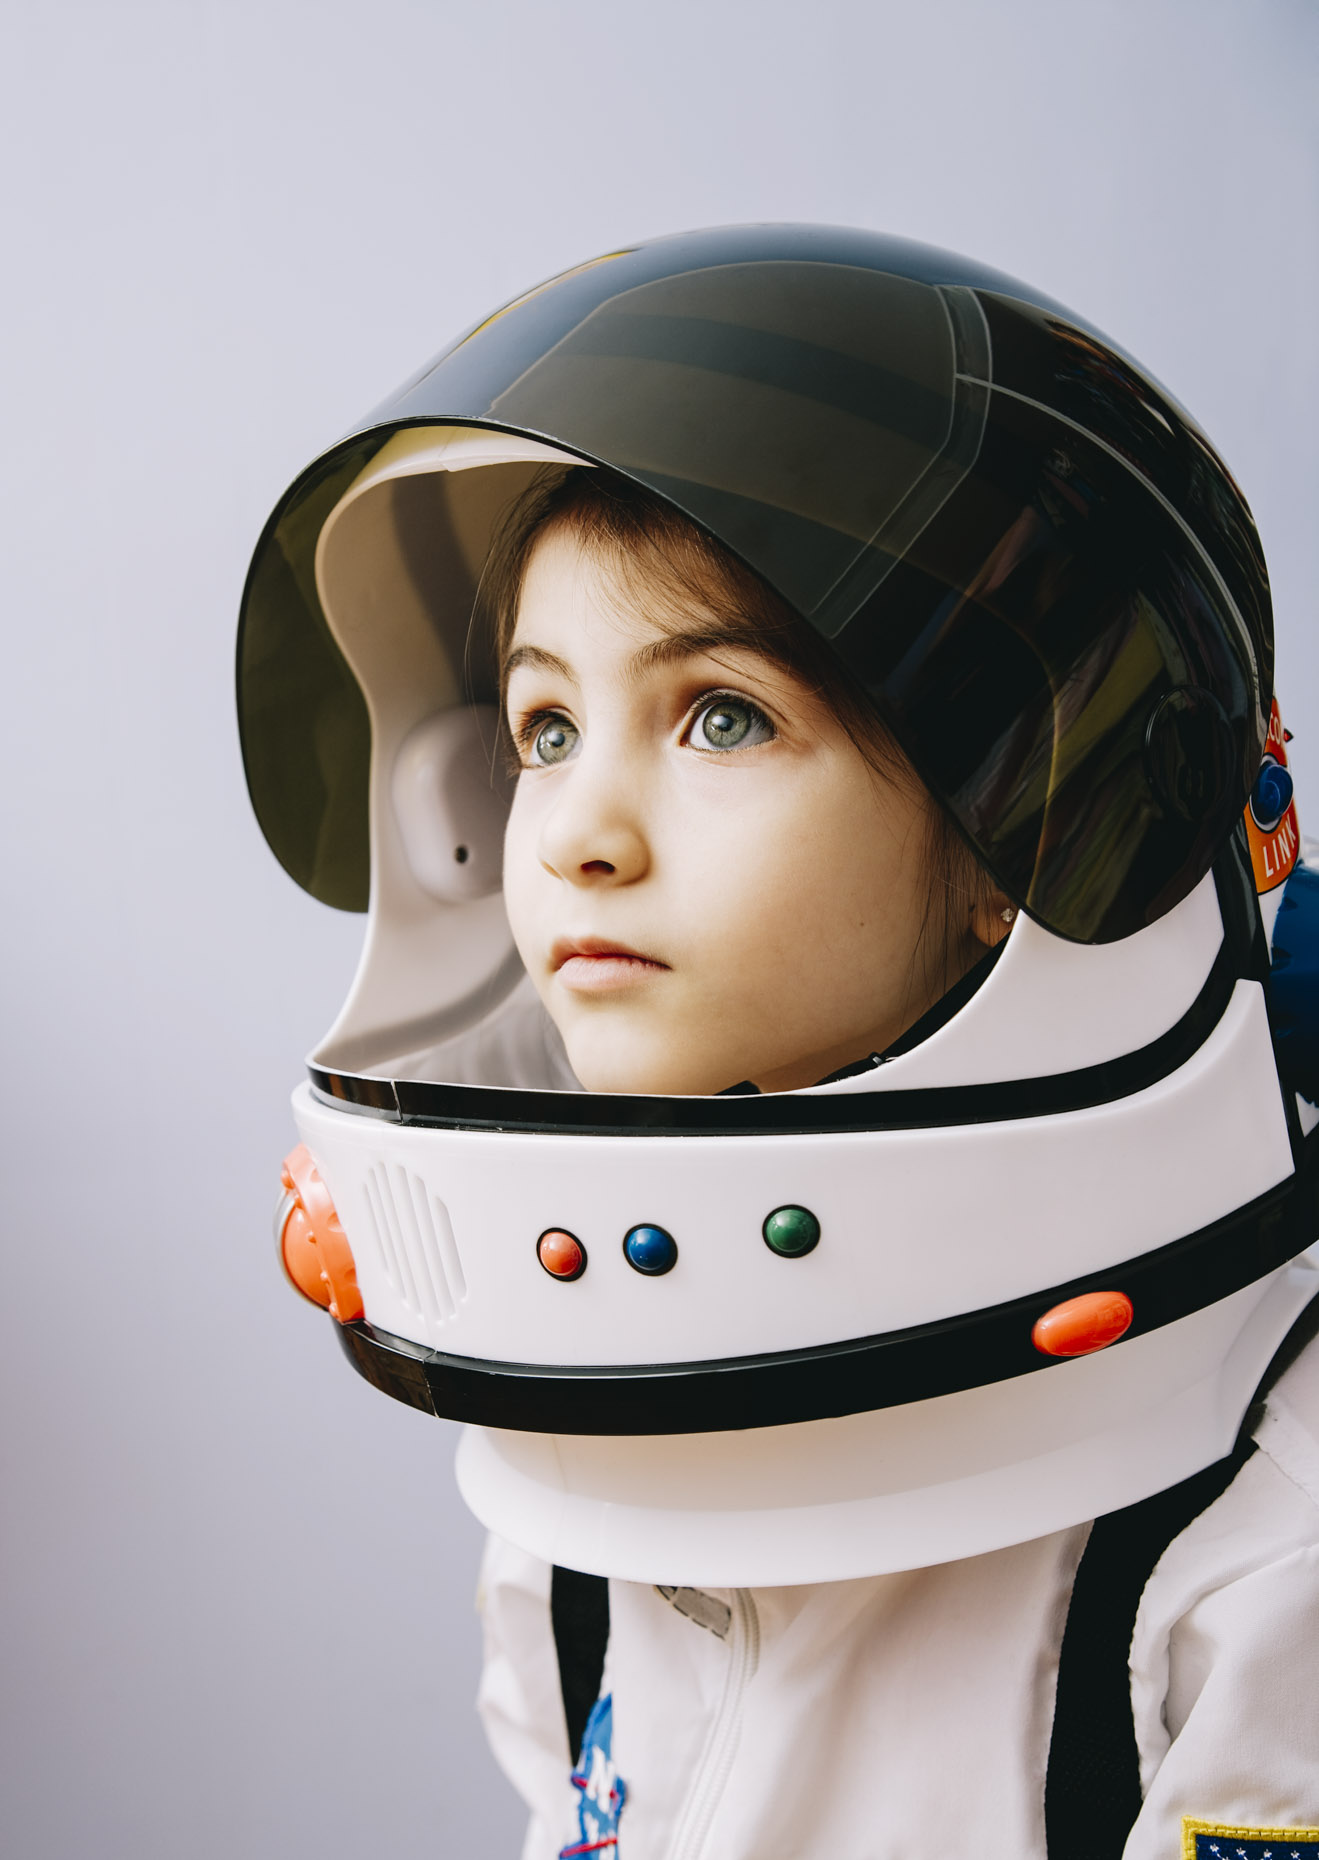 Portrait of young girl in space suit, Seattle, WA, Inti St. Clair